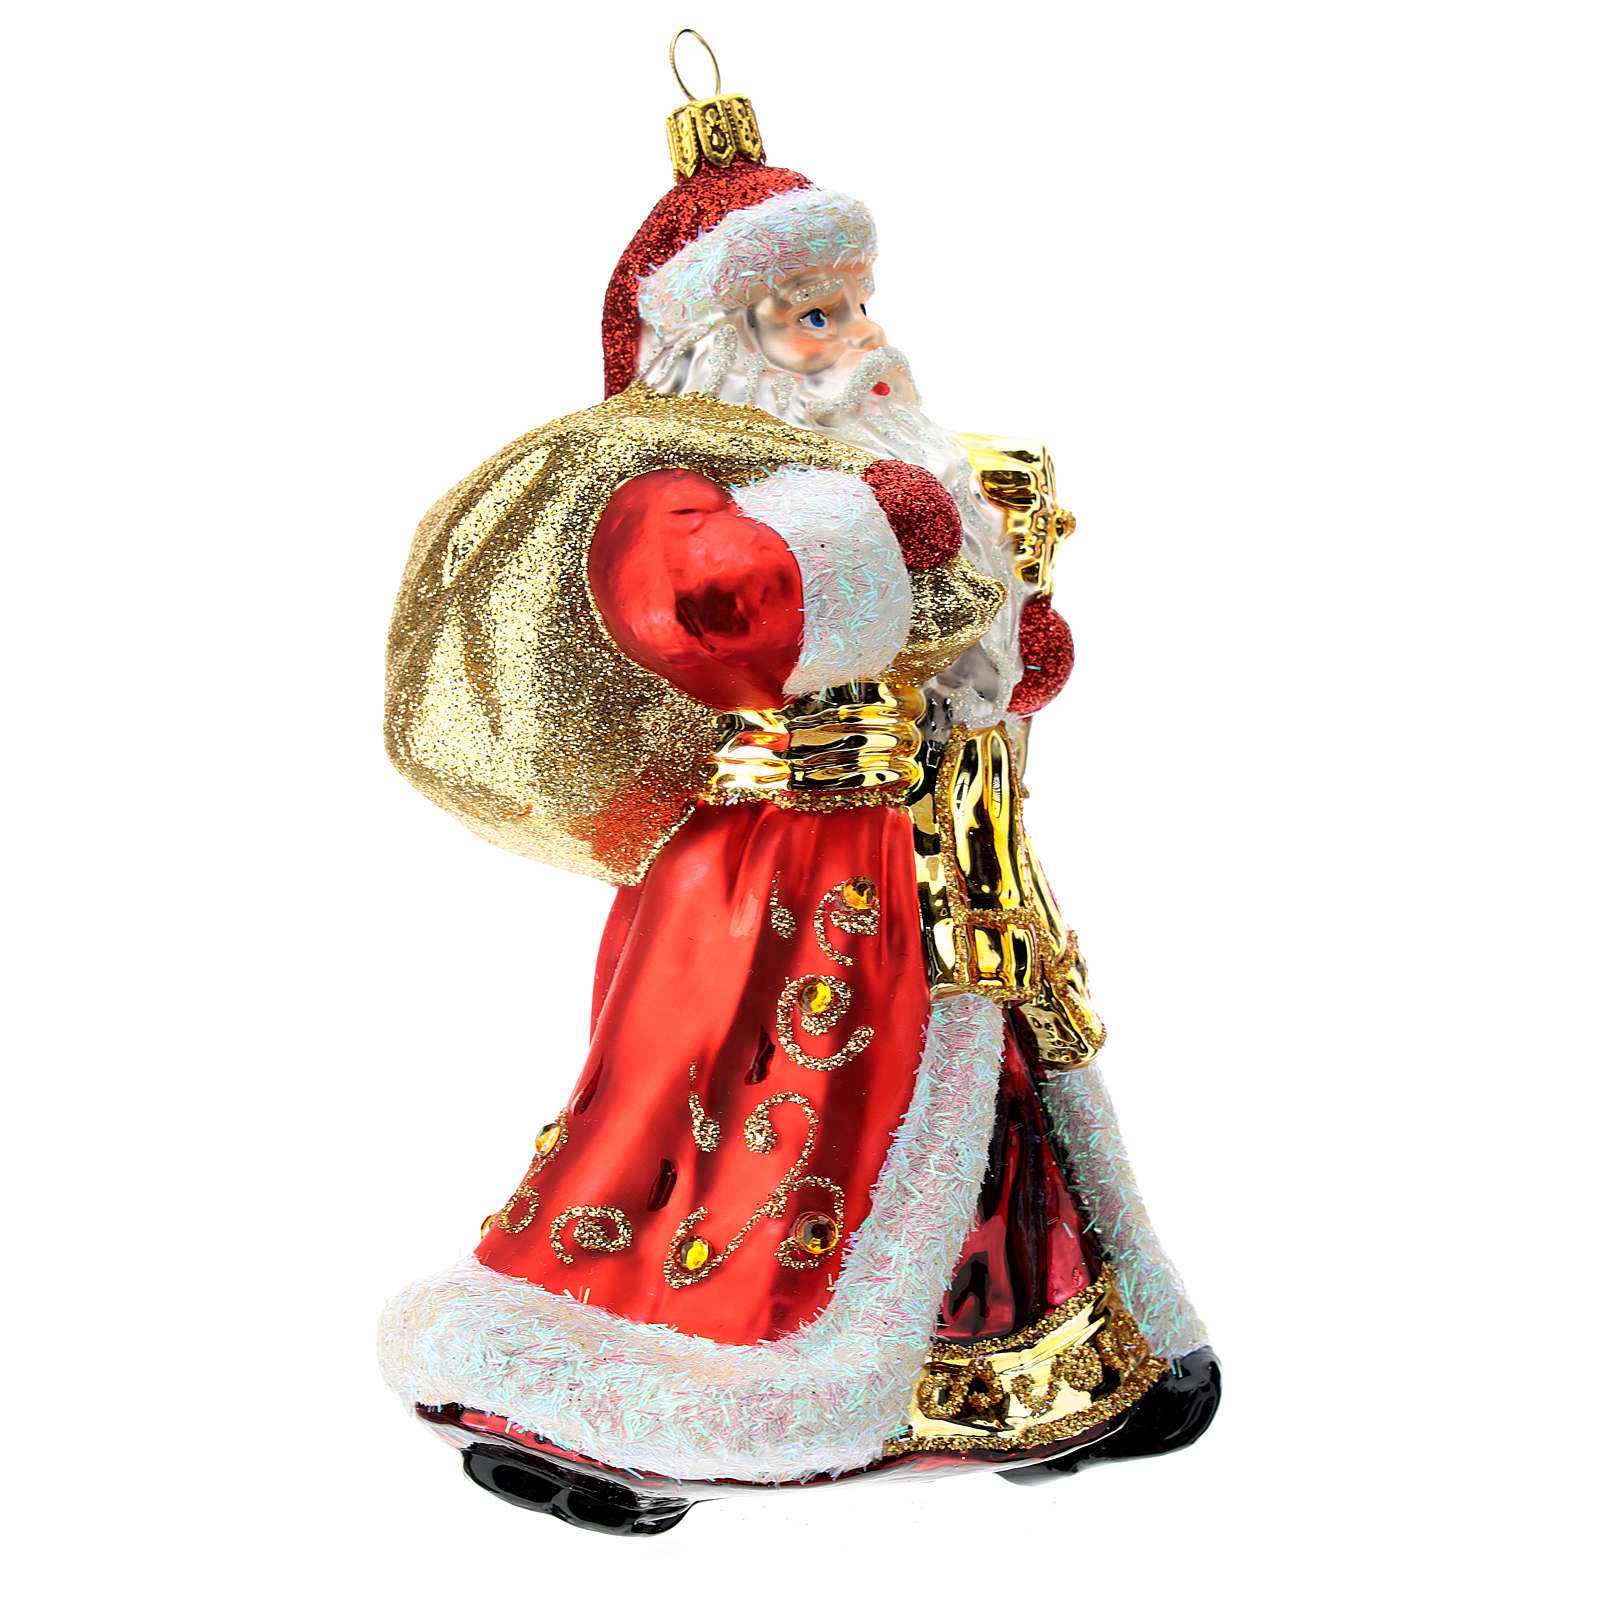 Blown glass Christmas ornament, Santa Claus red and gold 4